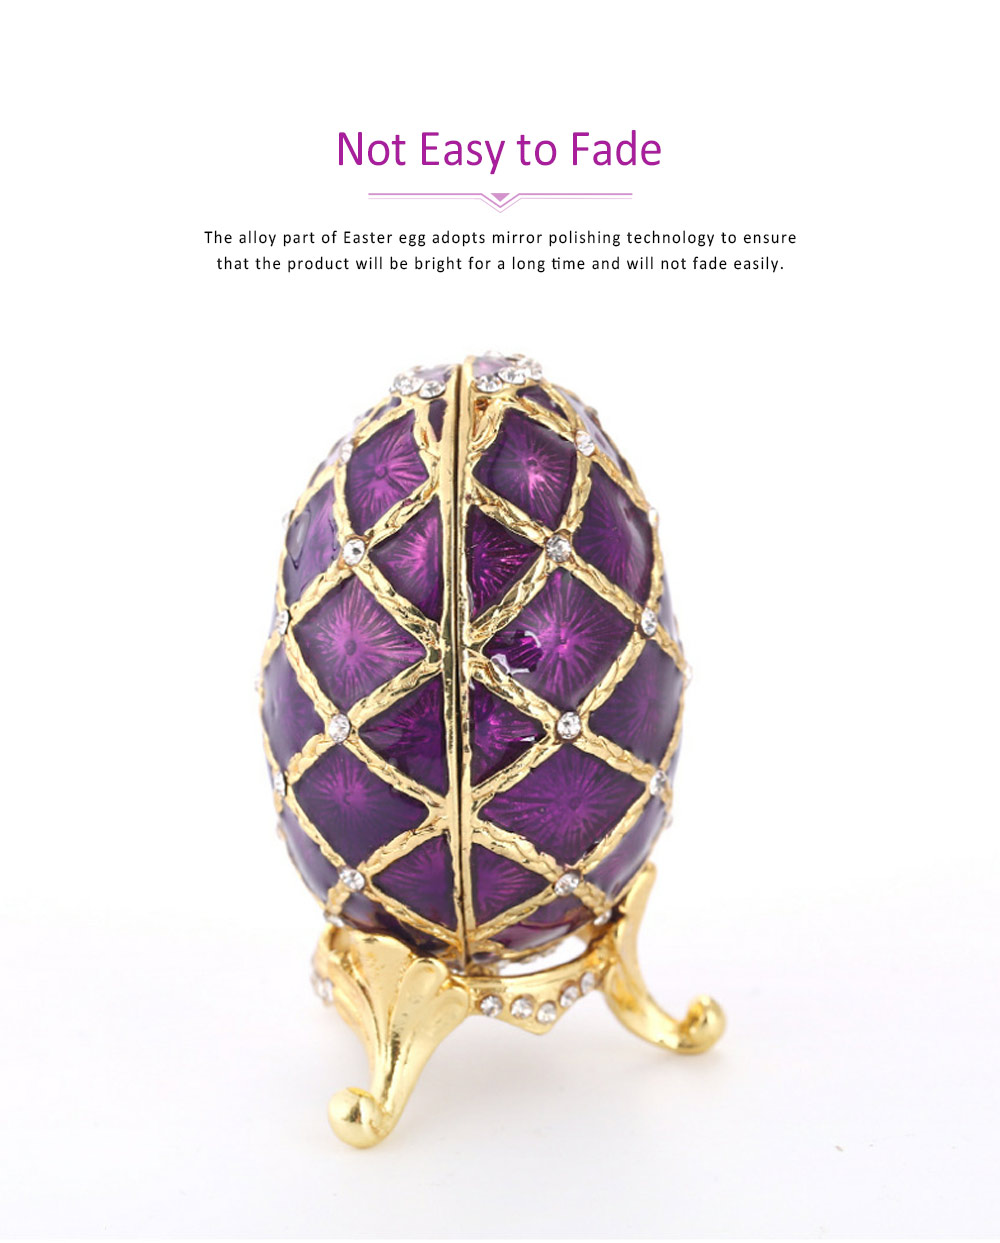 Painting Egg Jewelry Box Creativity Metal Handiwork Gold Plated Diamond Encrusted Decoration Easter Egg 3